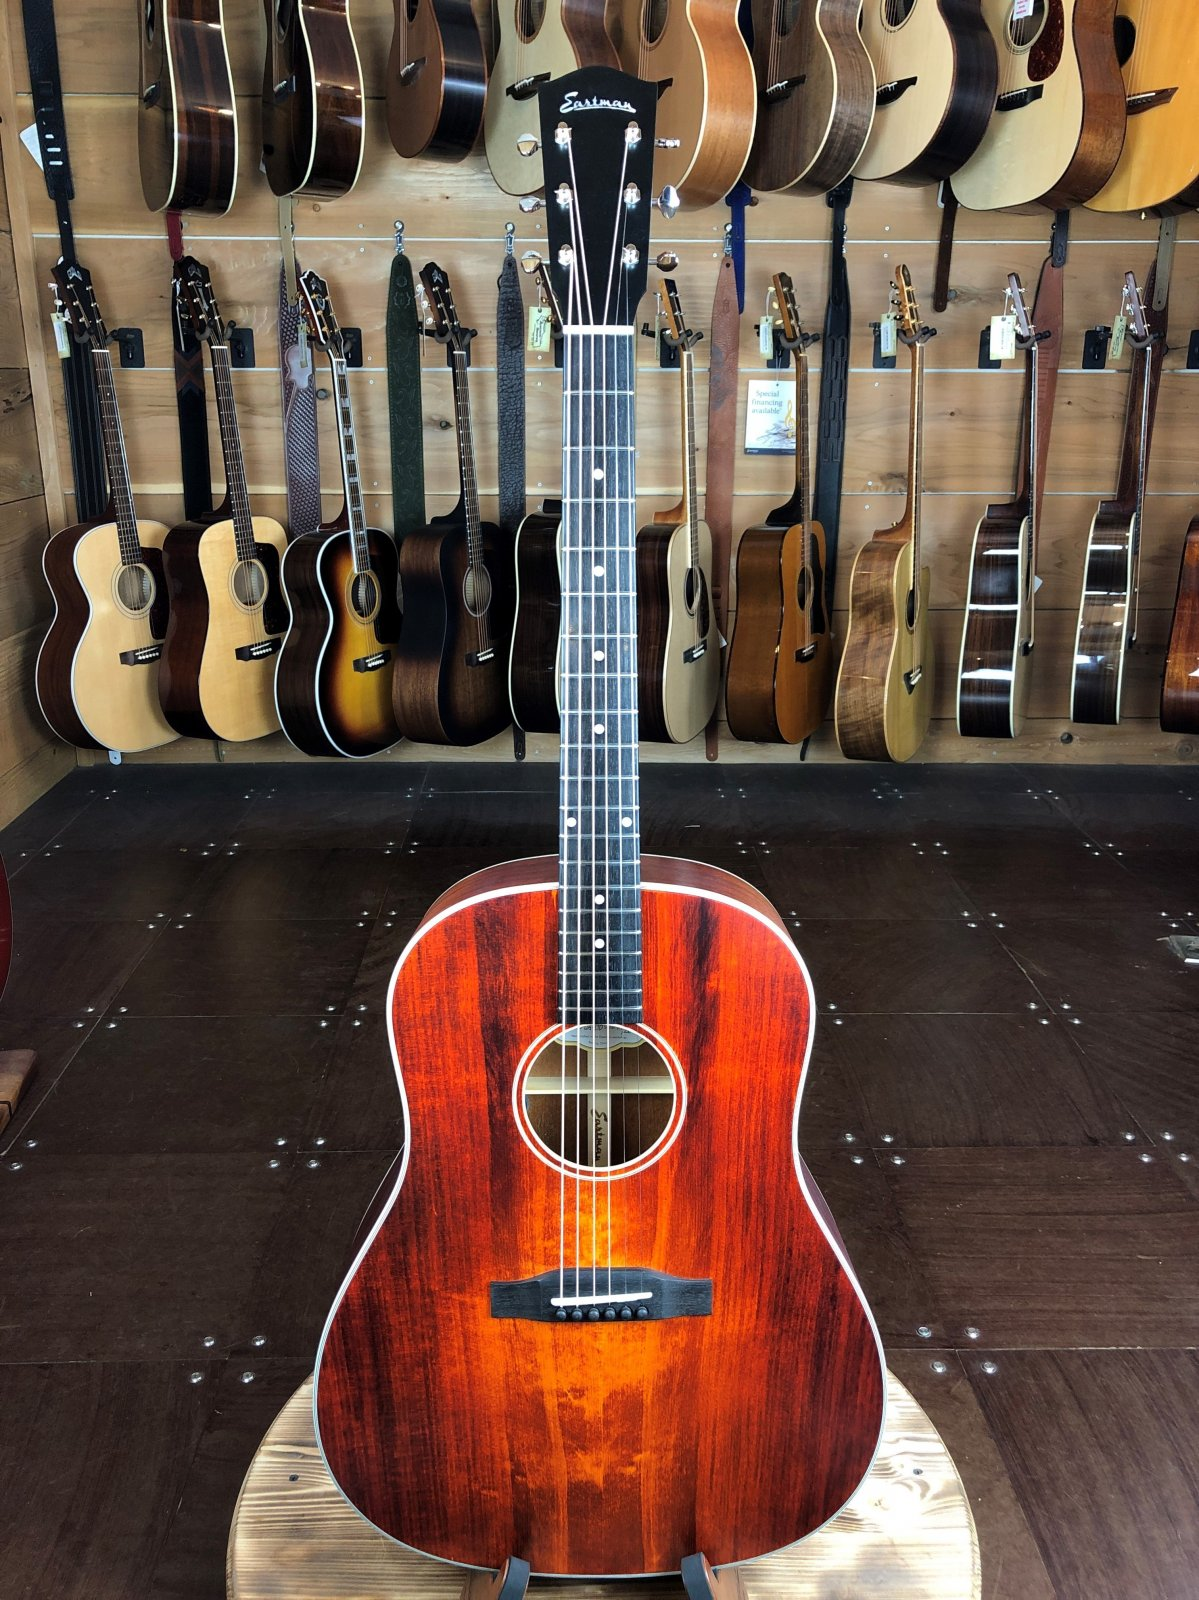 Eastman E1SS-LTD-CLA Slope Shoulder Adirondack Top Limited Edition Dreadnaught Acoustic #117/250